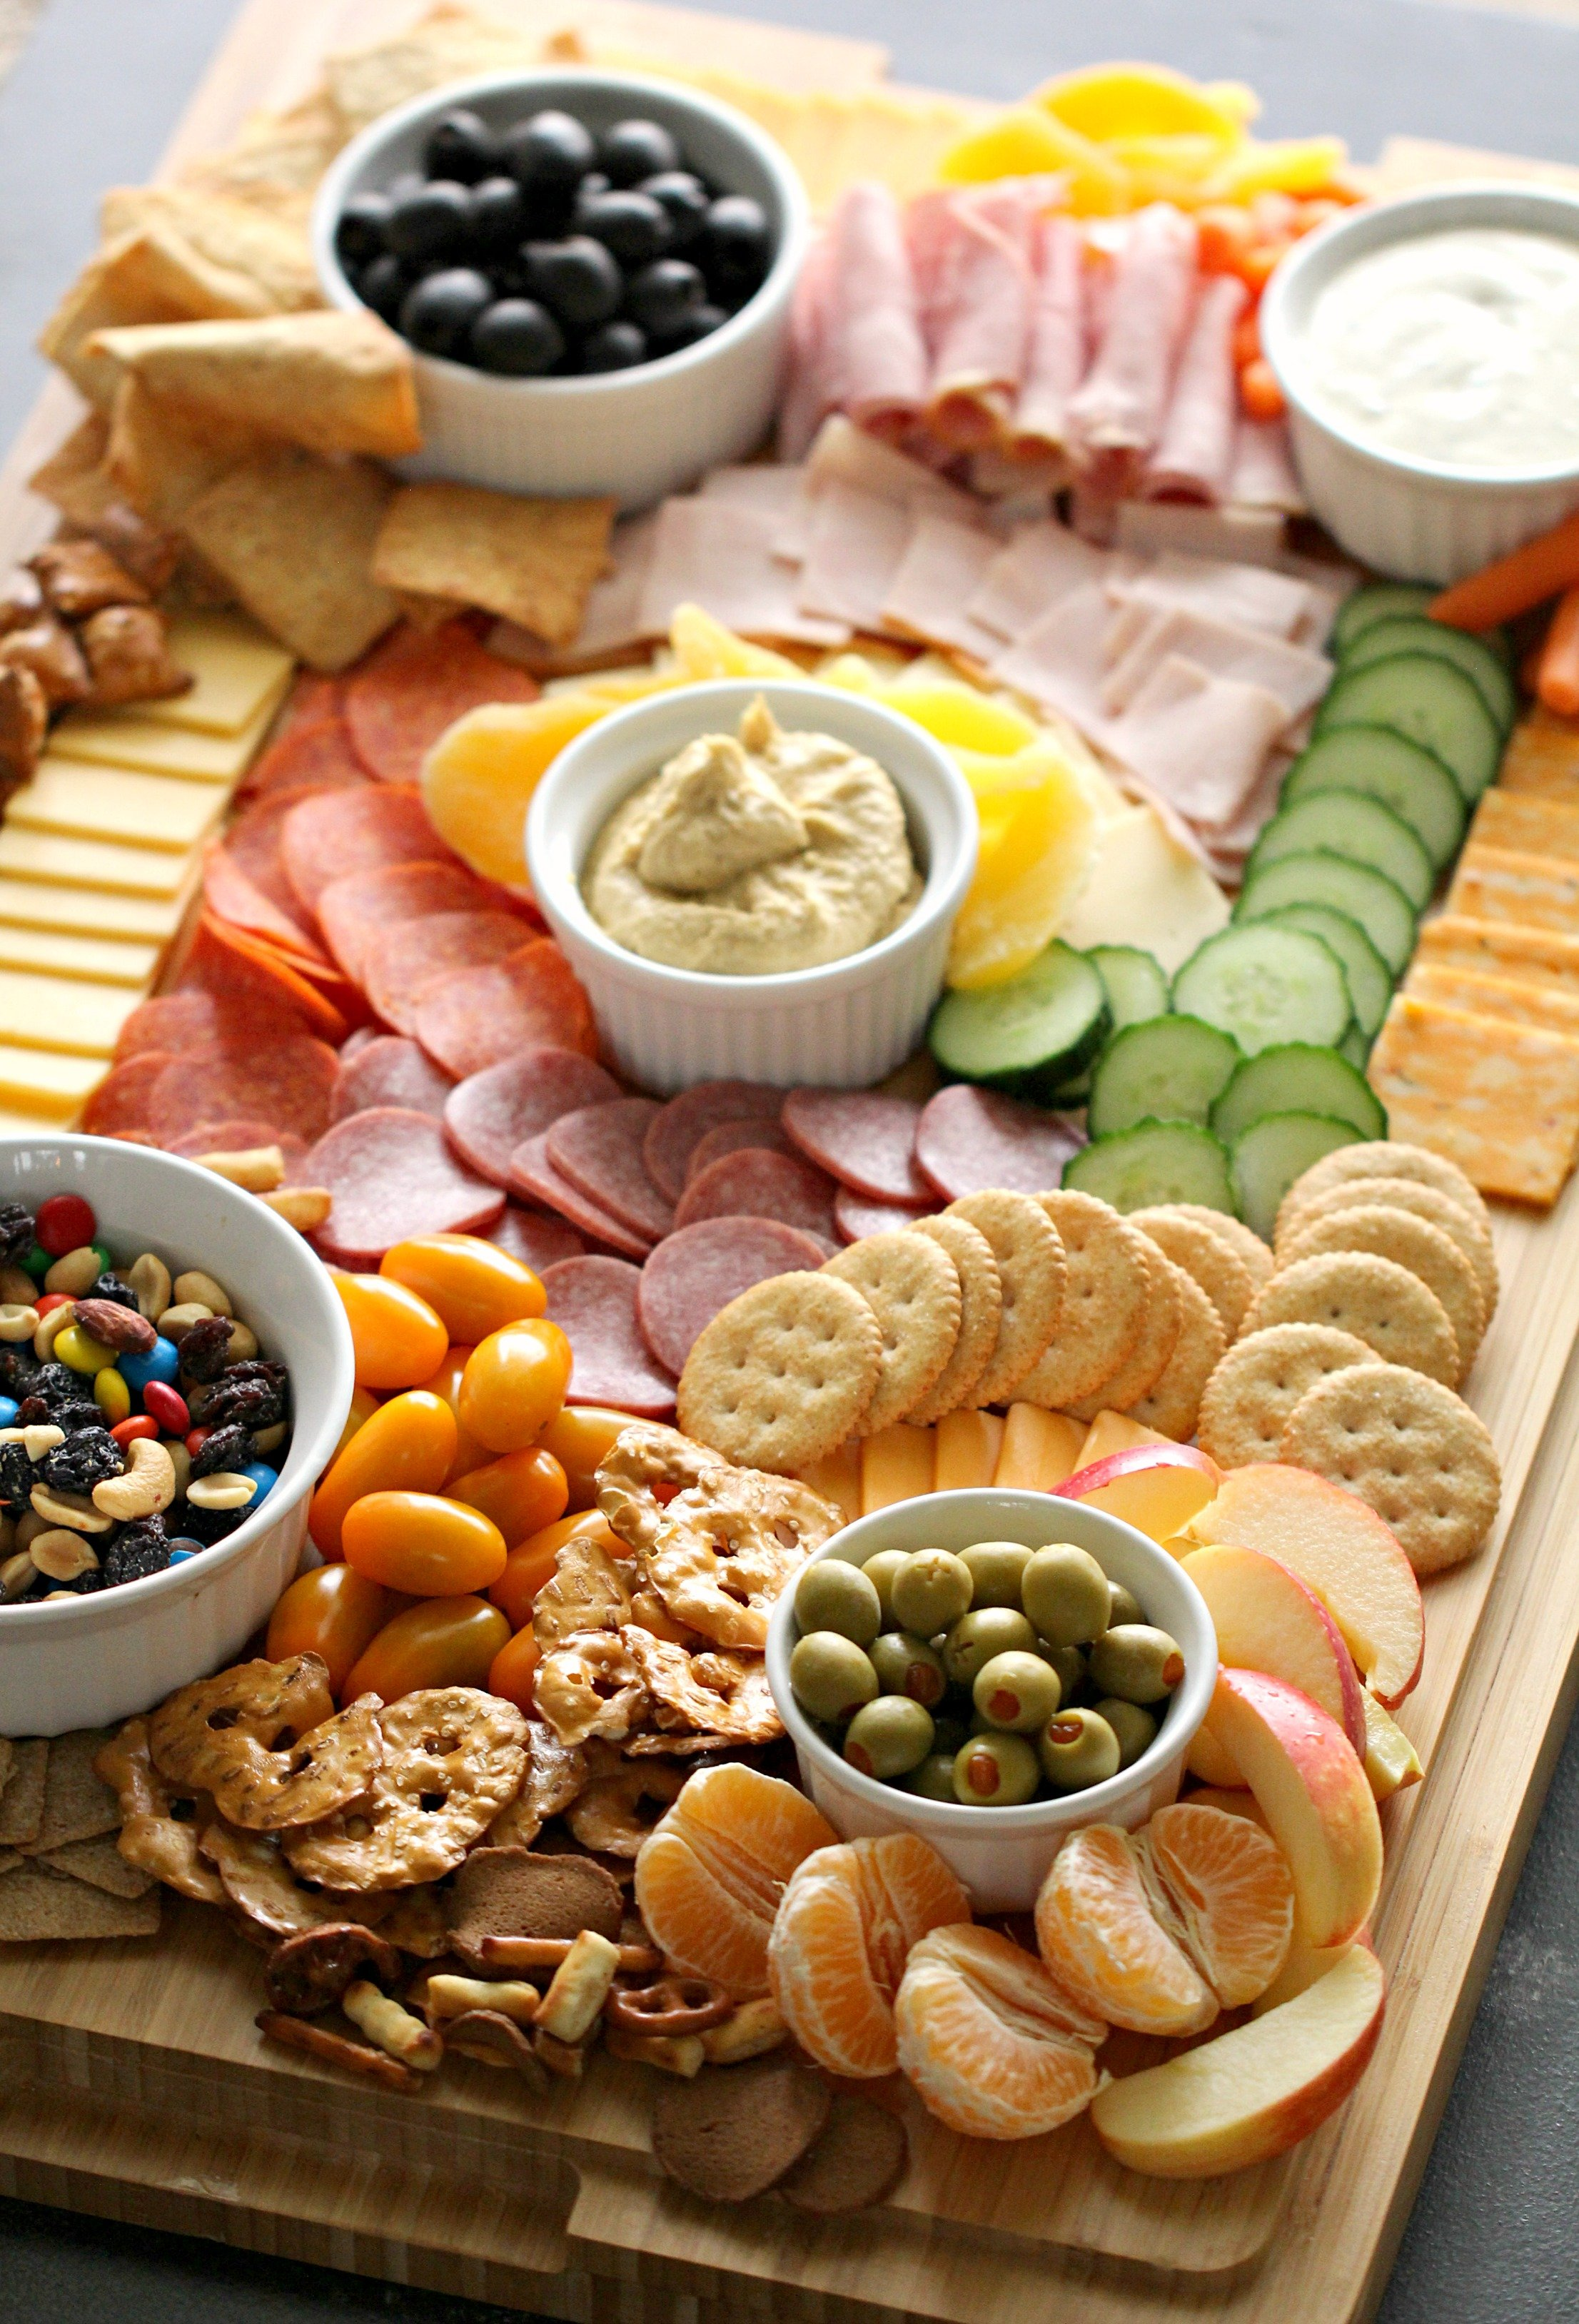 How To Make A Kid-Friendly Charcuterie Board [Step-by-Step Instructions]